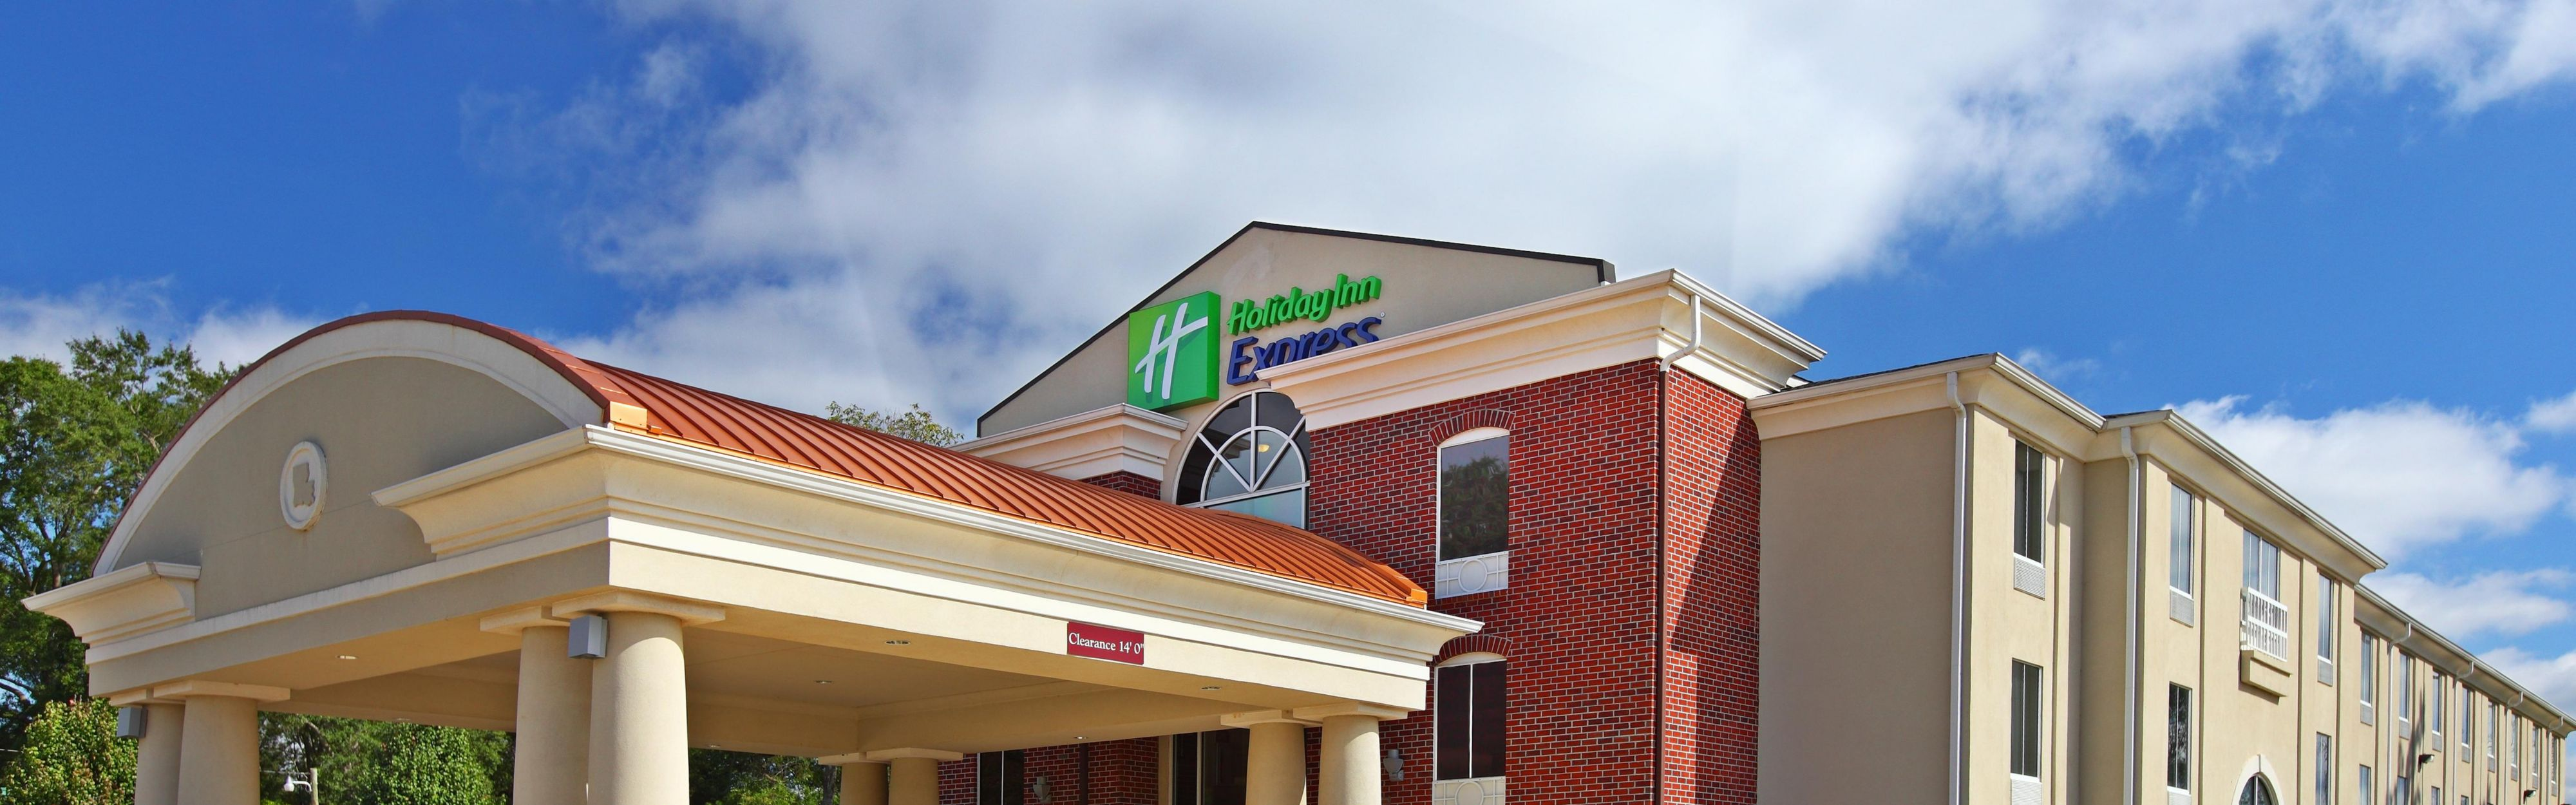 Holiday inn coupon code